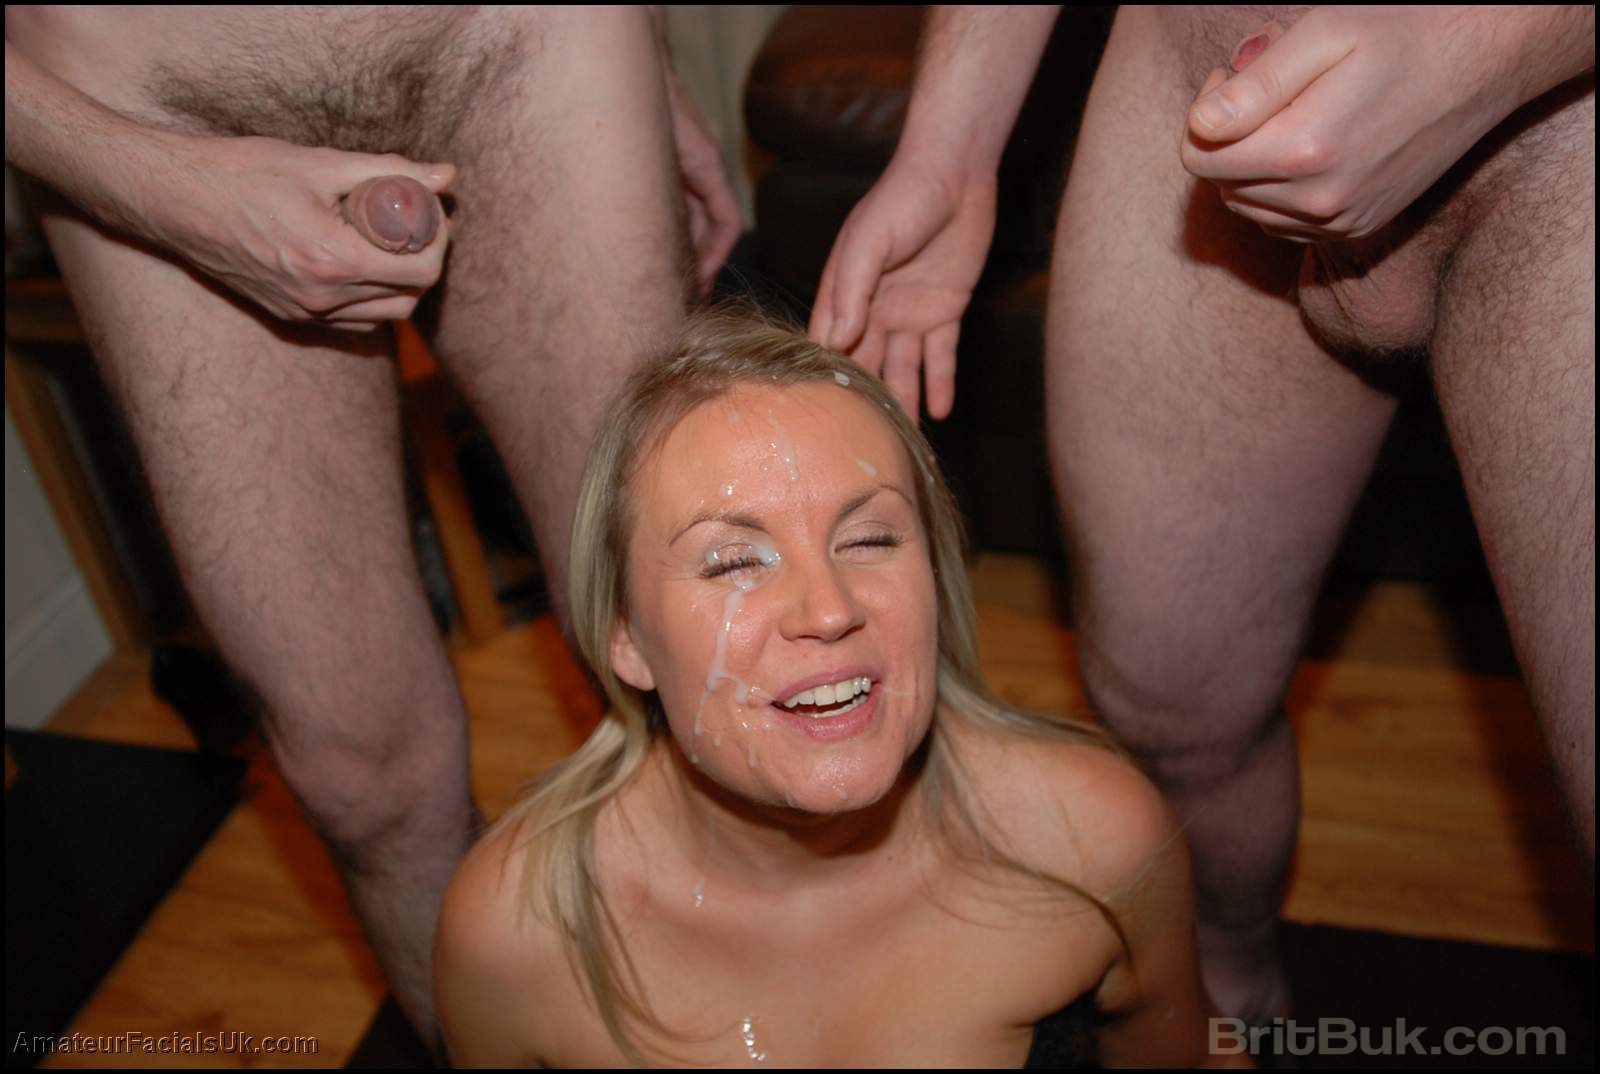 Amateur so hot so cute young blond big dildos 6